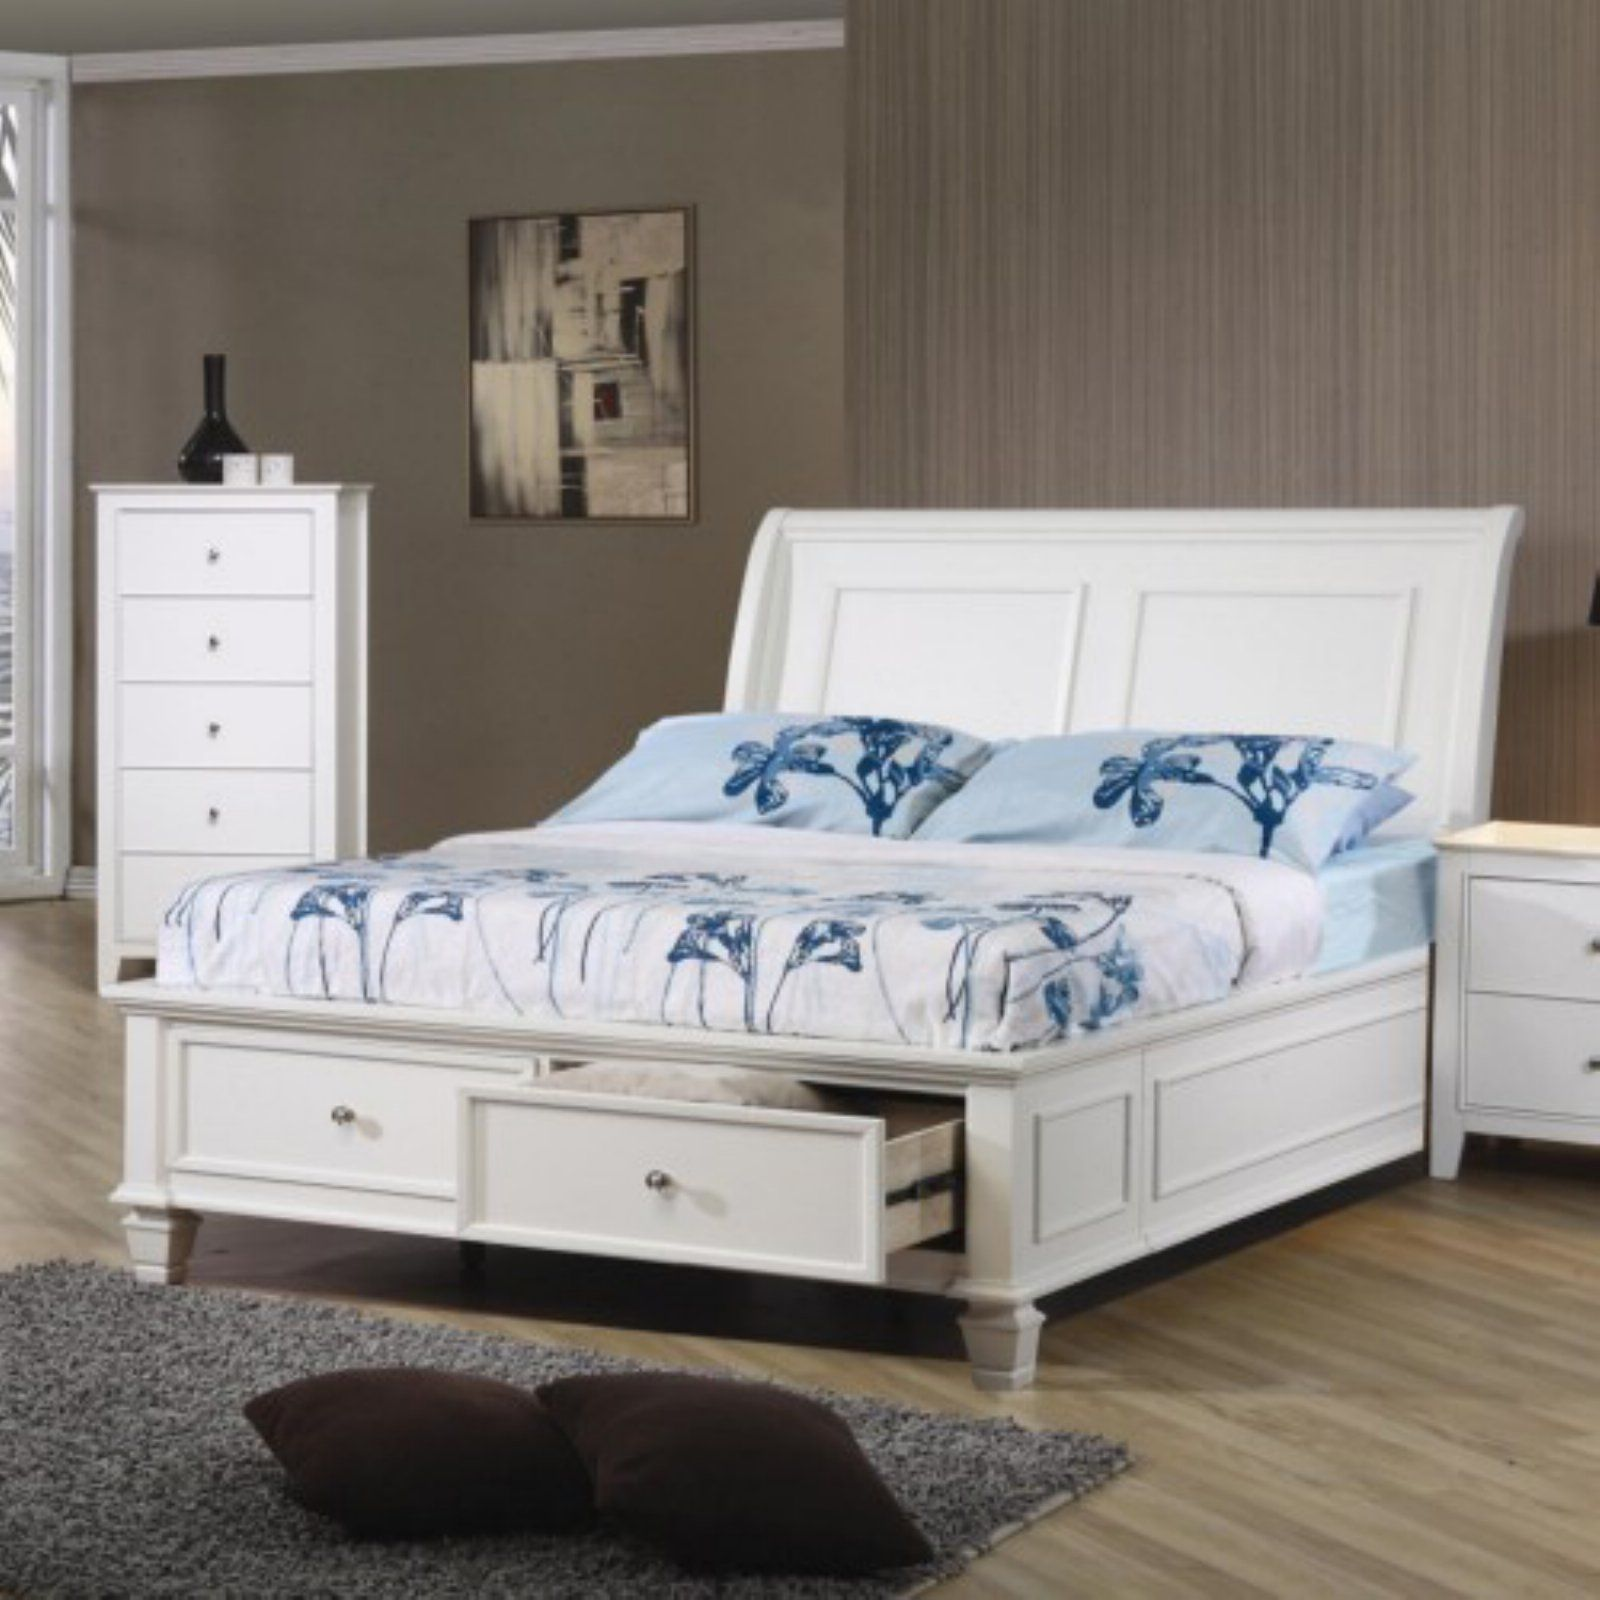 Coaster Furniture Selena Sleigh Bed with Footboard Storage